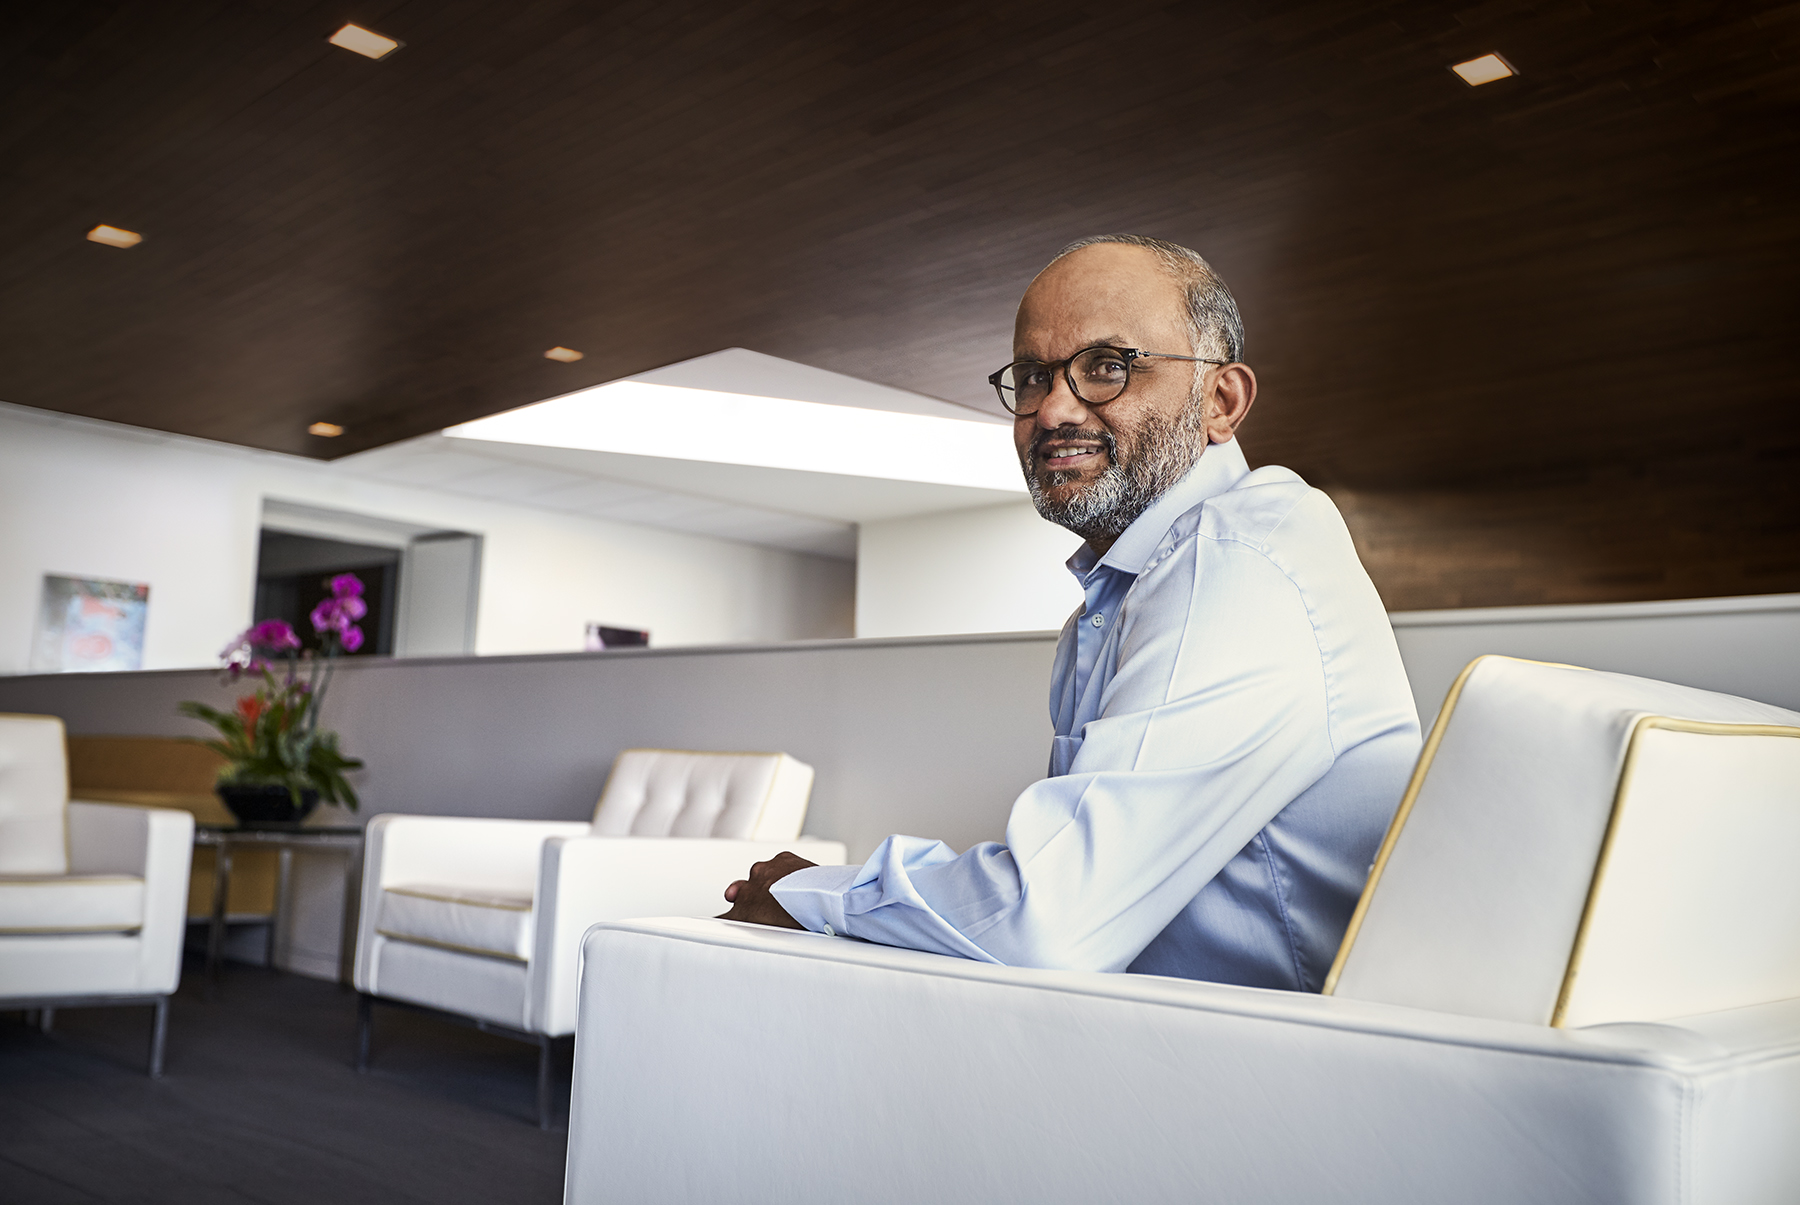 Adobe Executive Portraits